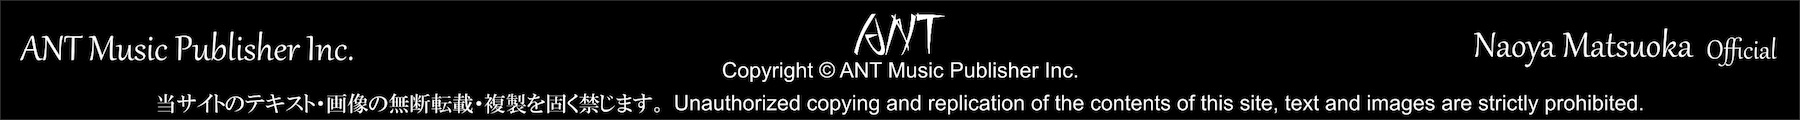 ANT Music PubLiher Inc.